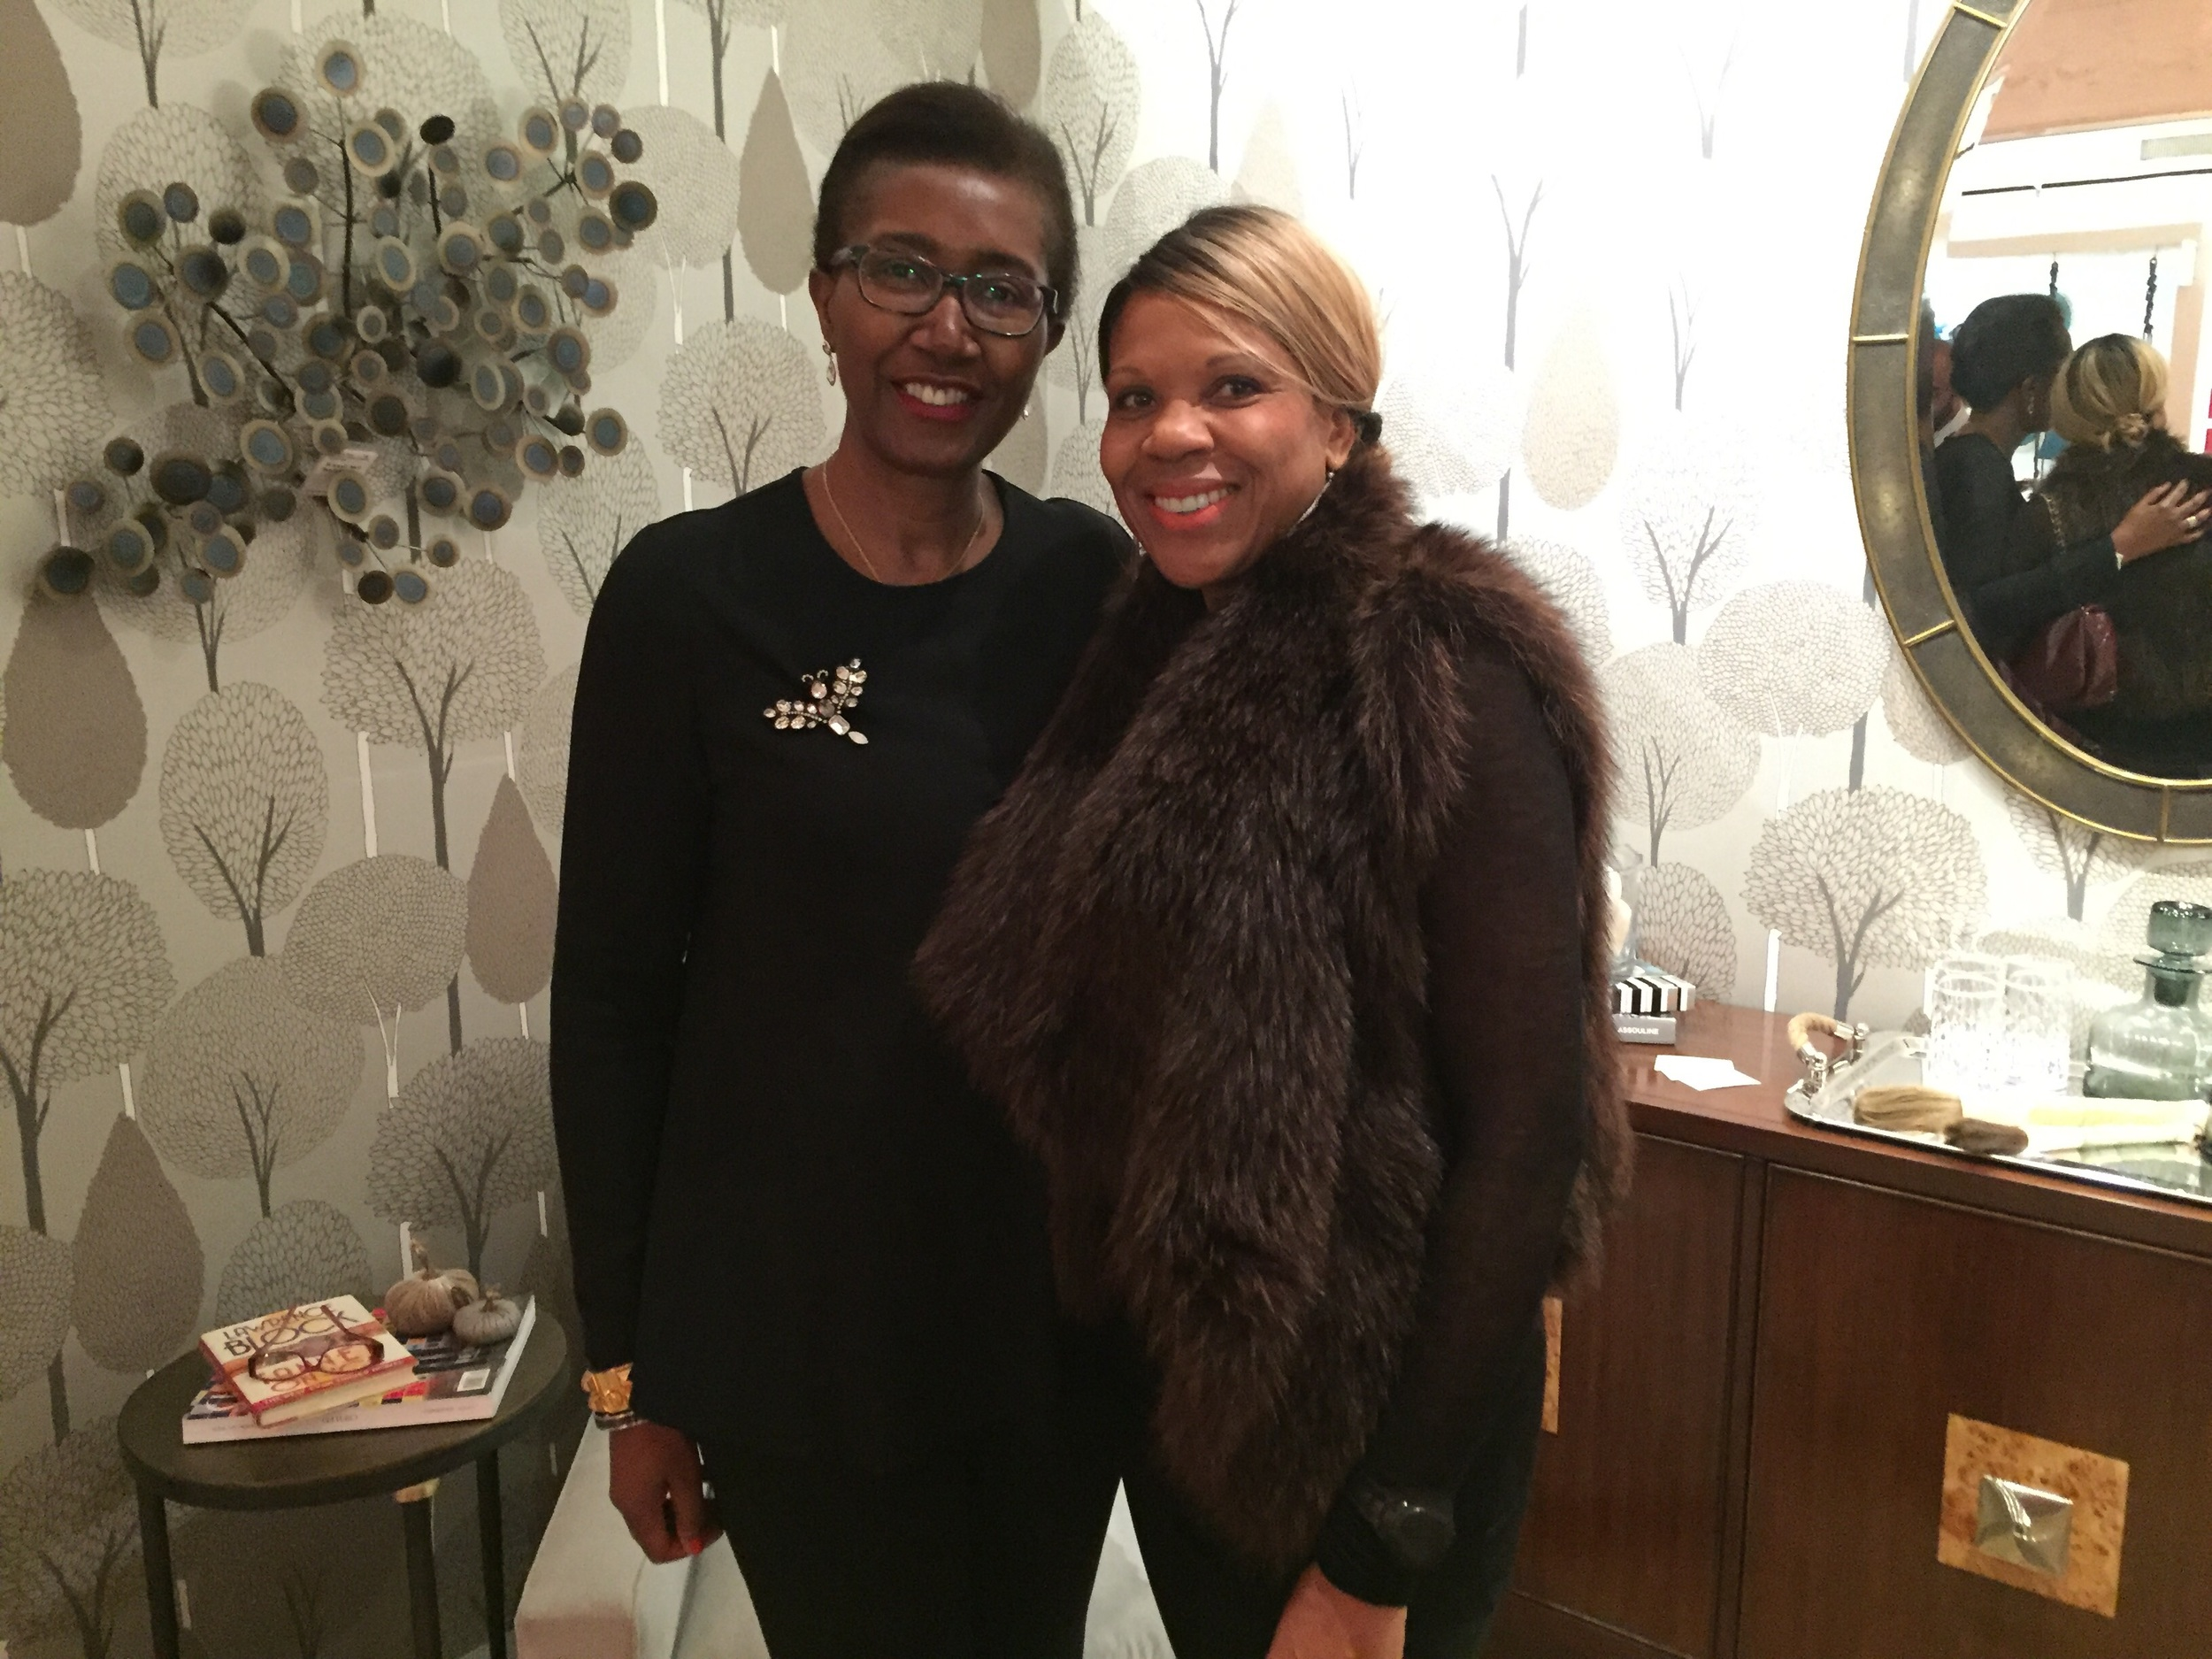 Girlfriend Charmaine Campbell stopped by - loving that fox gilet!